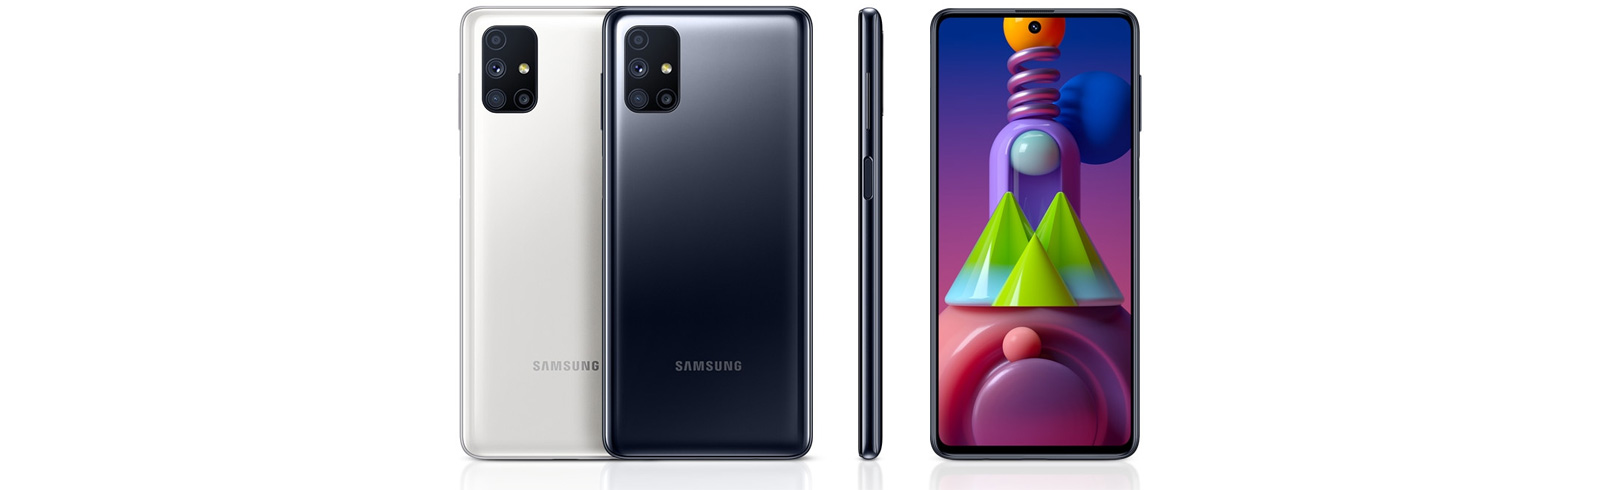 Samsung Galaxy M51 goes official in Europe priced at EUR 360